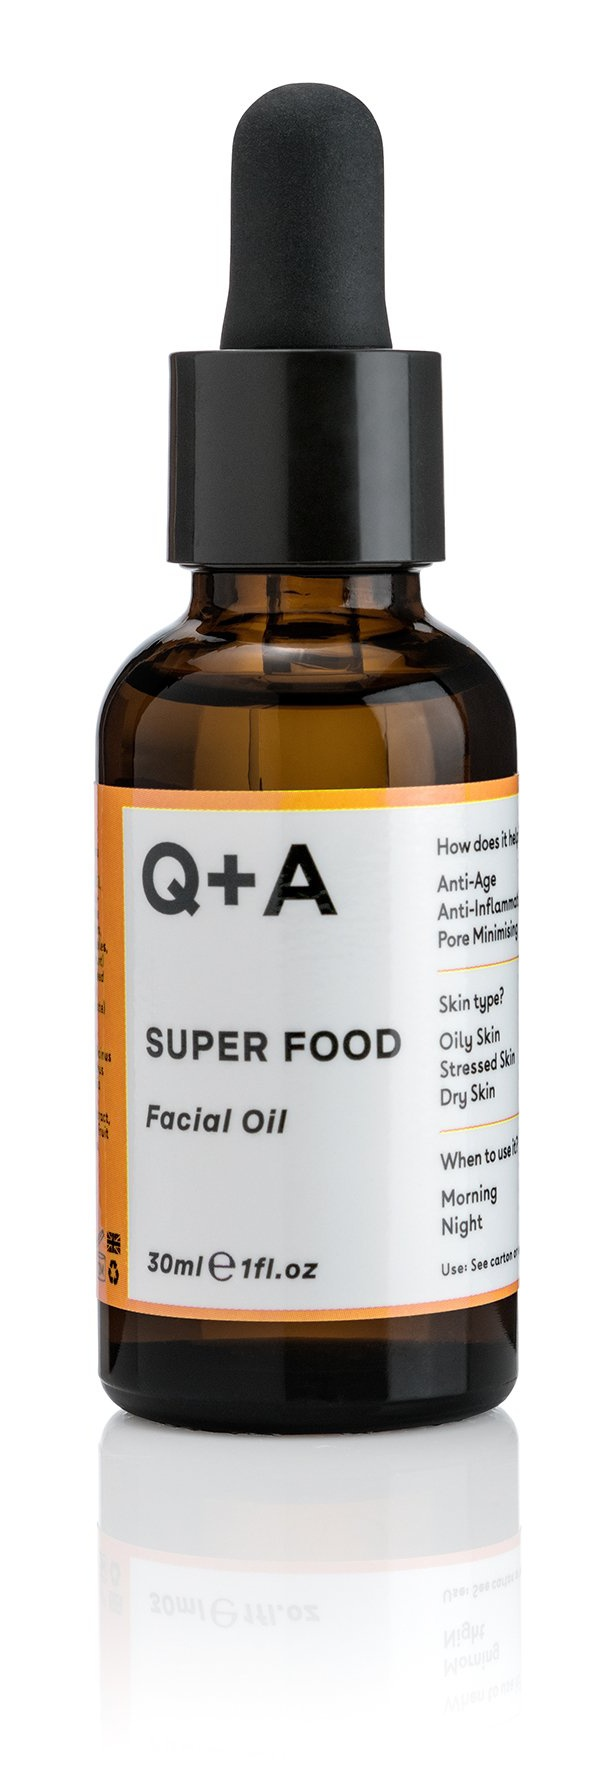 Q+A Super Food Facial Oil